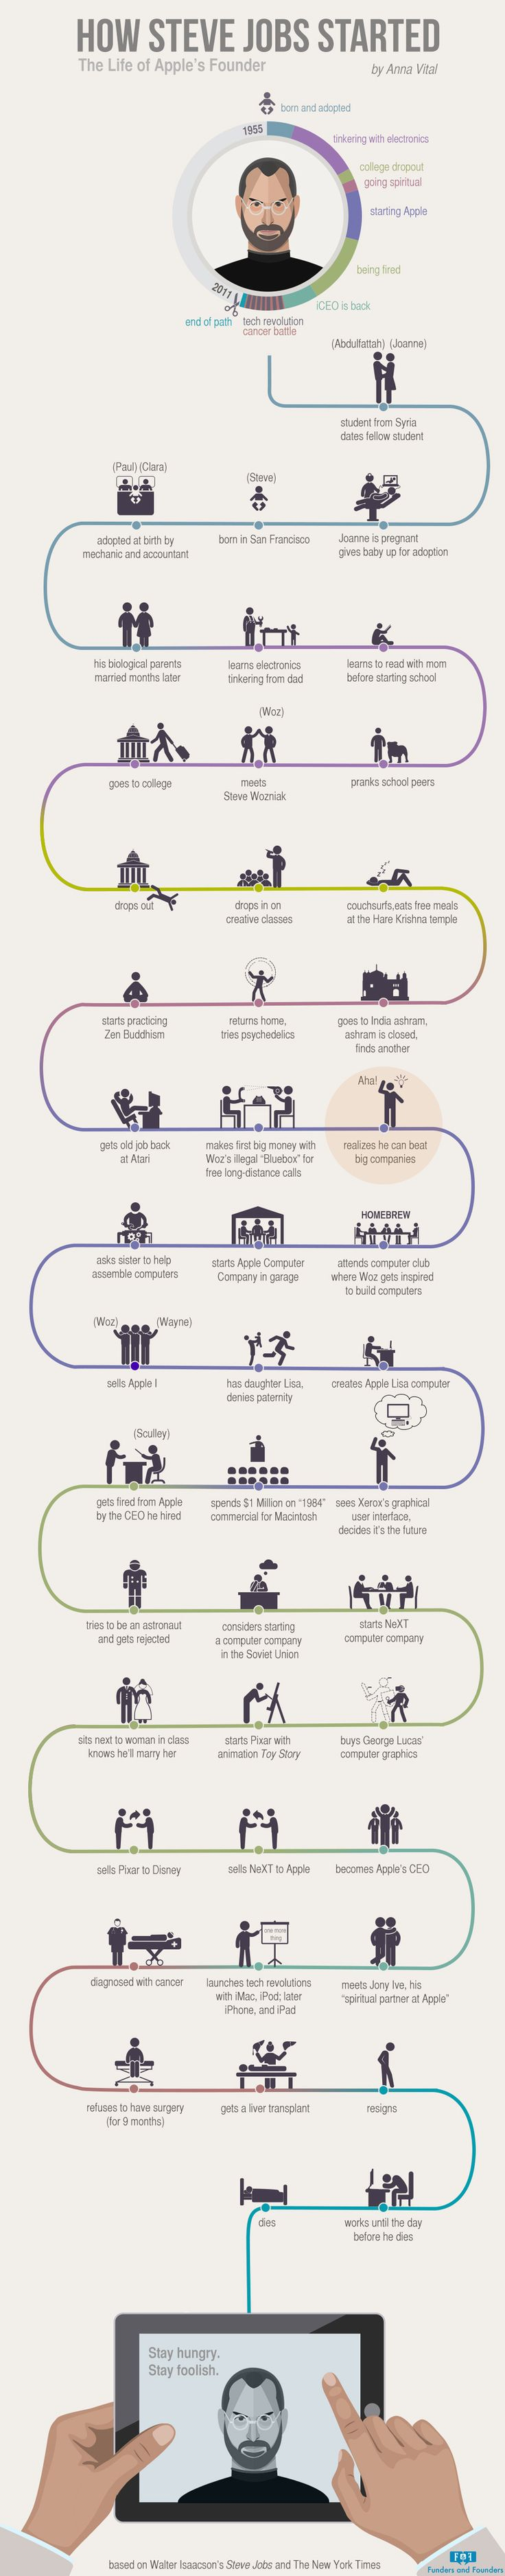 Steve Jobs' Long and Winding Startup Path (Infographic) | Inc.com